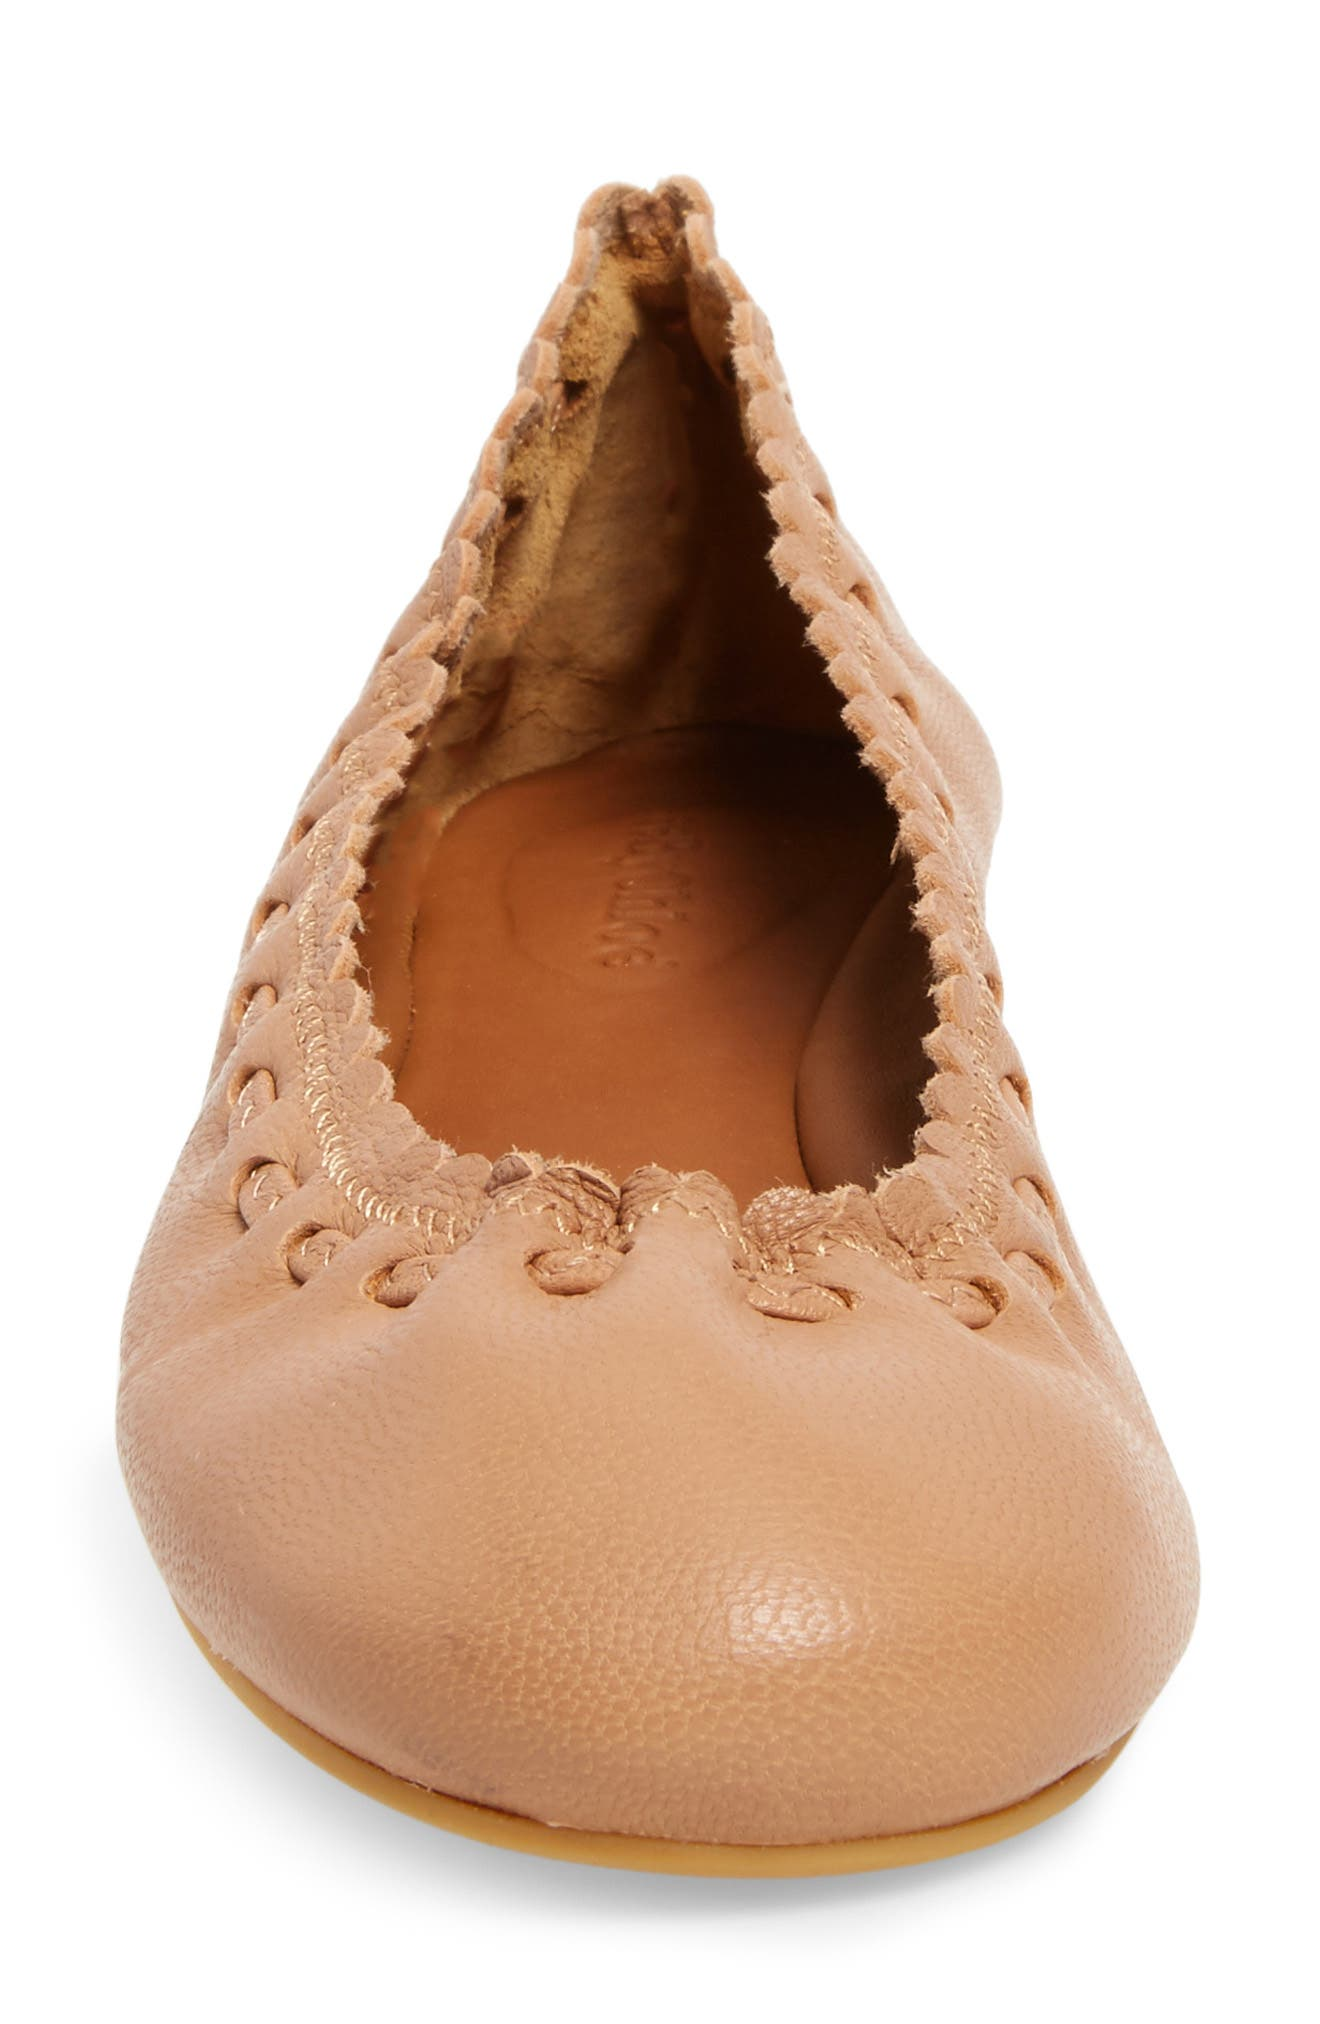 'Jane' Ballerina Flat,                             Alternate thumbnail 3, color,                             Nude/ Goat Leather